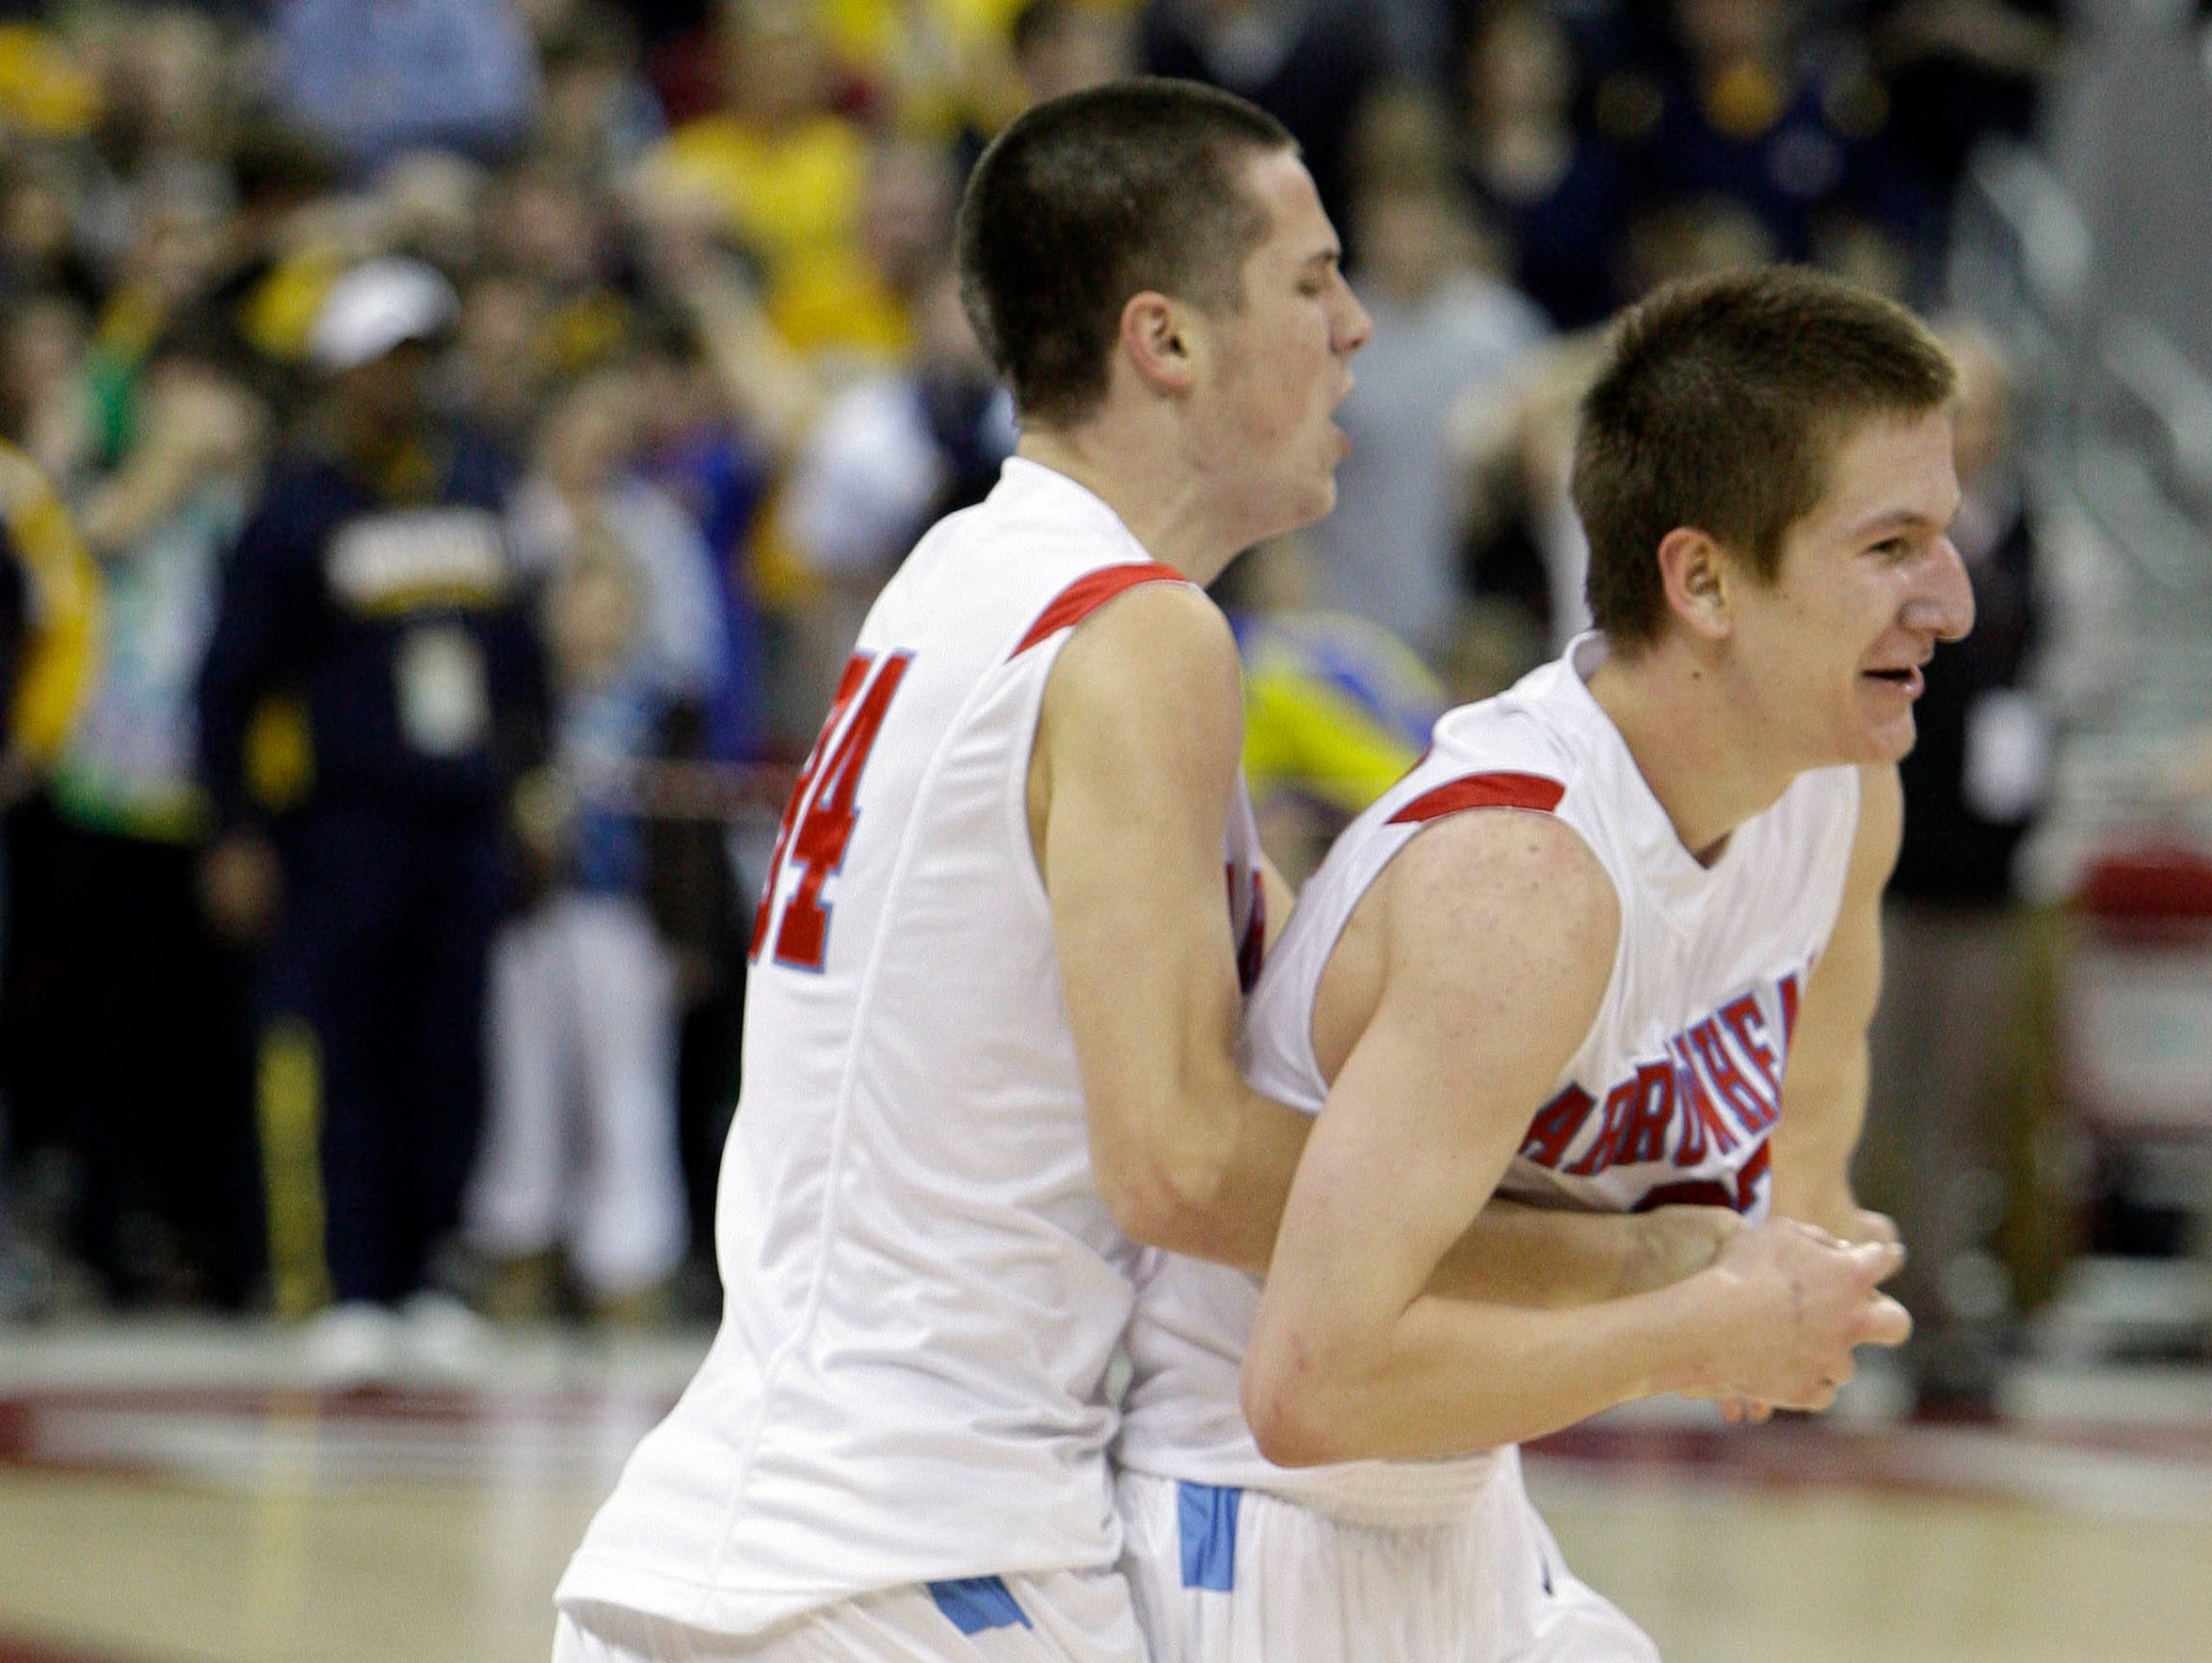 Arrowhead's Charles Rushman is embraced by teammate Ryan May after making the game-winning shot during a state semifinal game March 19, 2010. Arrowhead went on to defeat Madison Memorial one night later in the state title game.